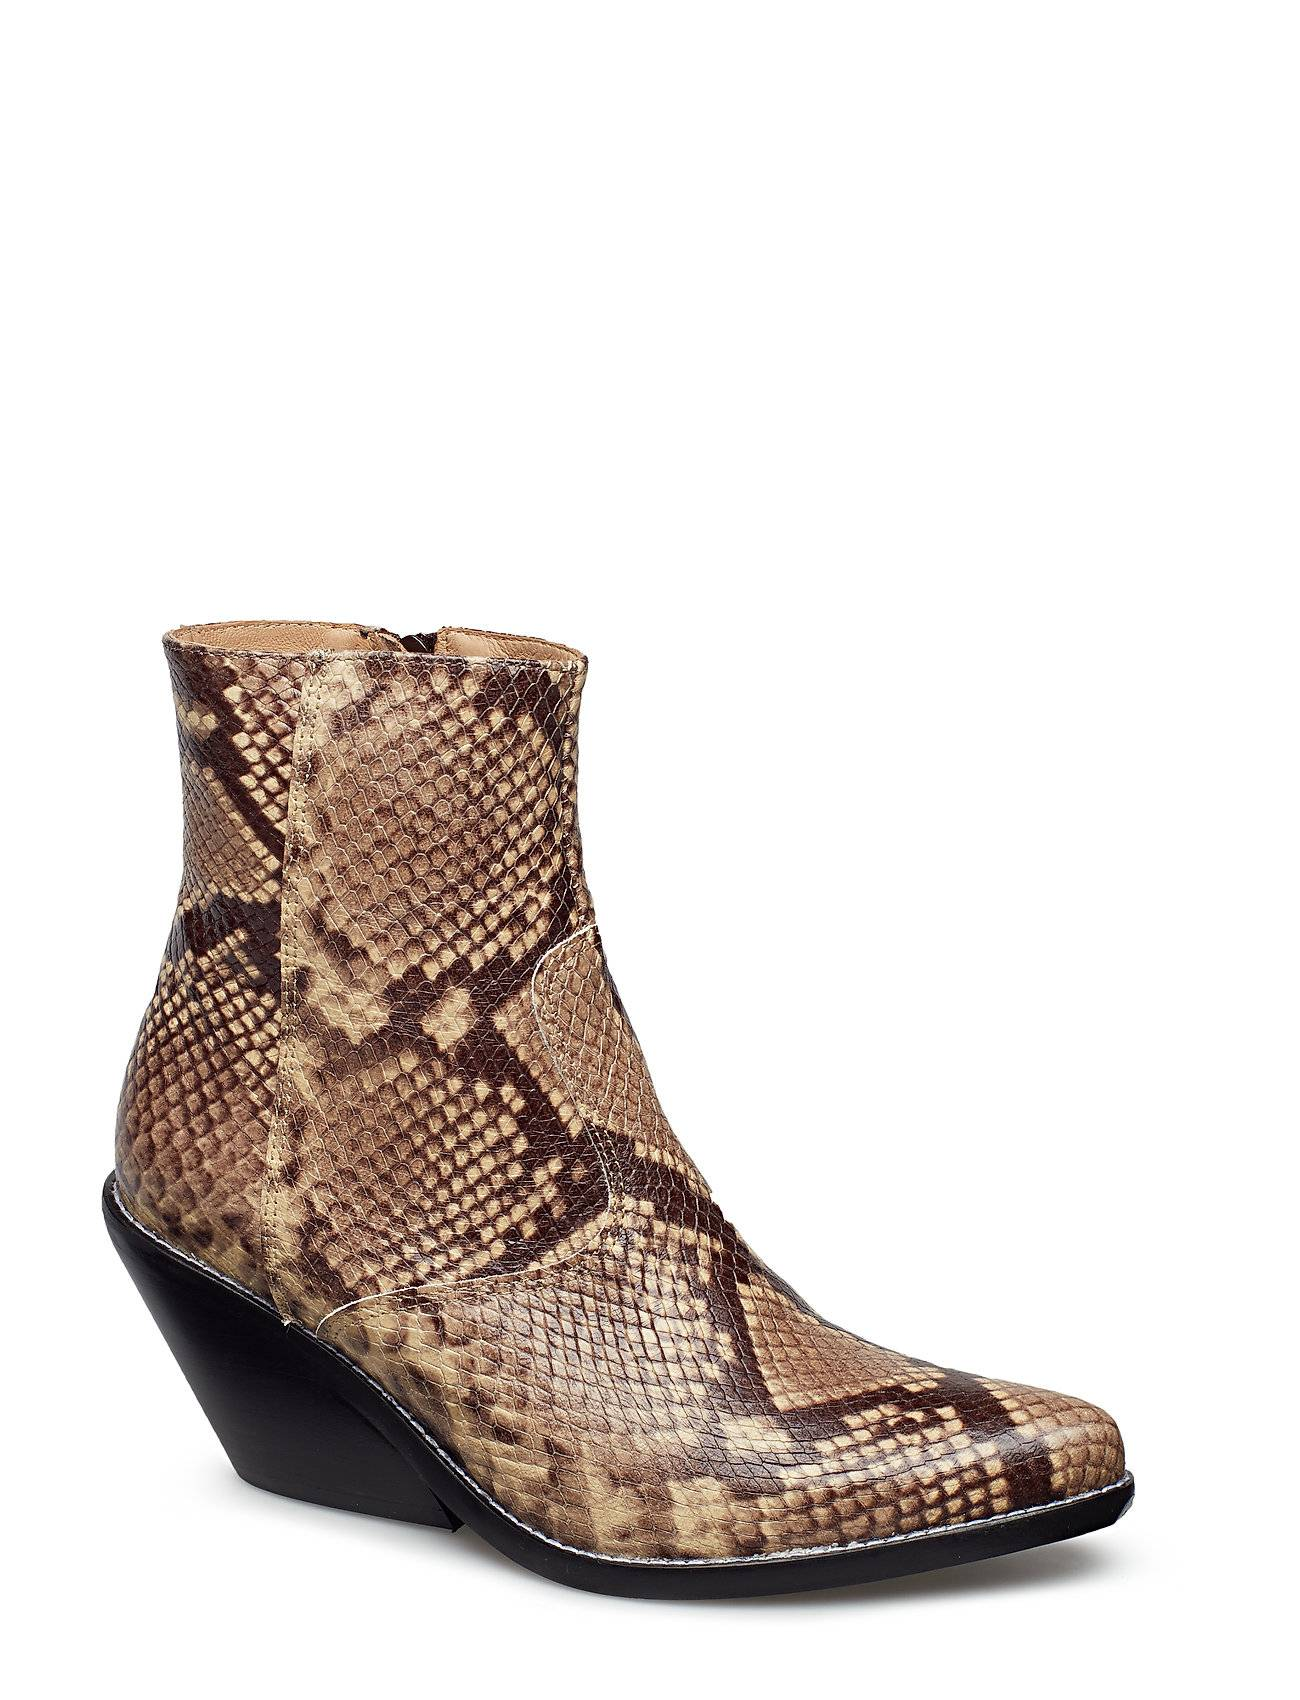 Henry Kole Evie Snake Brown Shoes Boots Ankle Boots Ankle Boot - Heel Ruskea Henry Kole